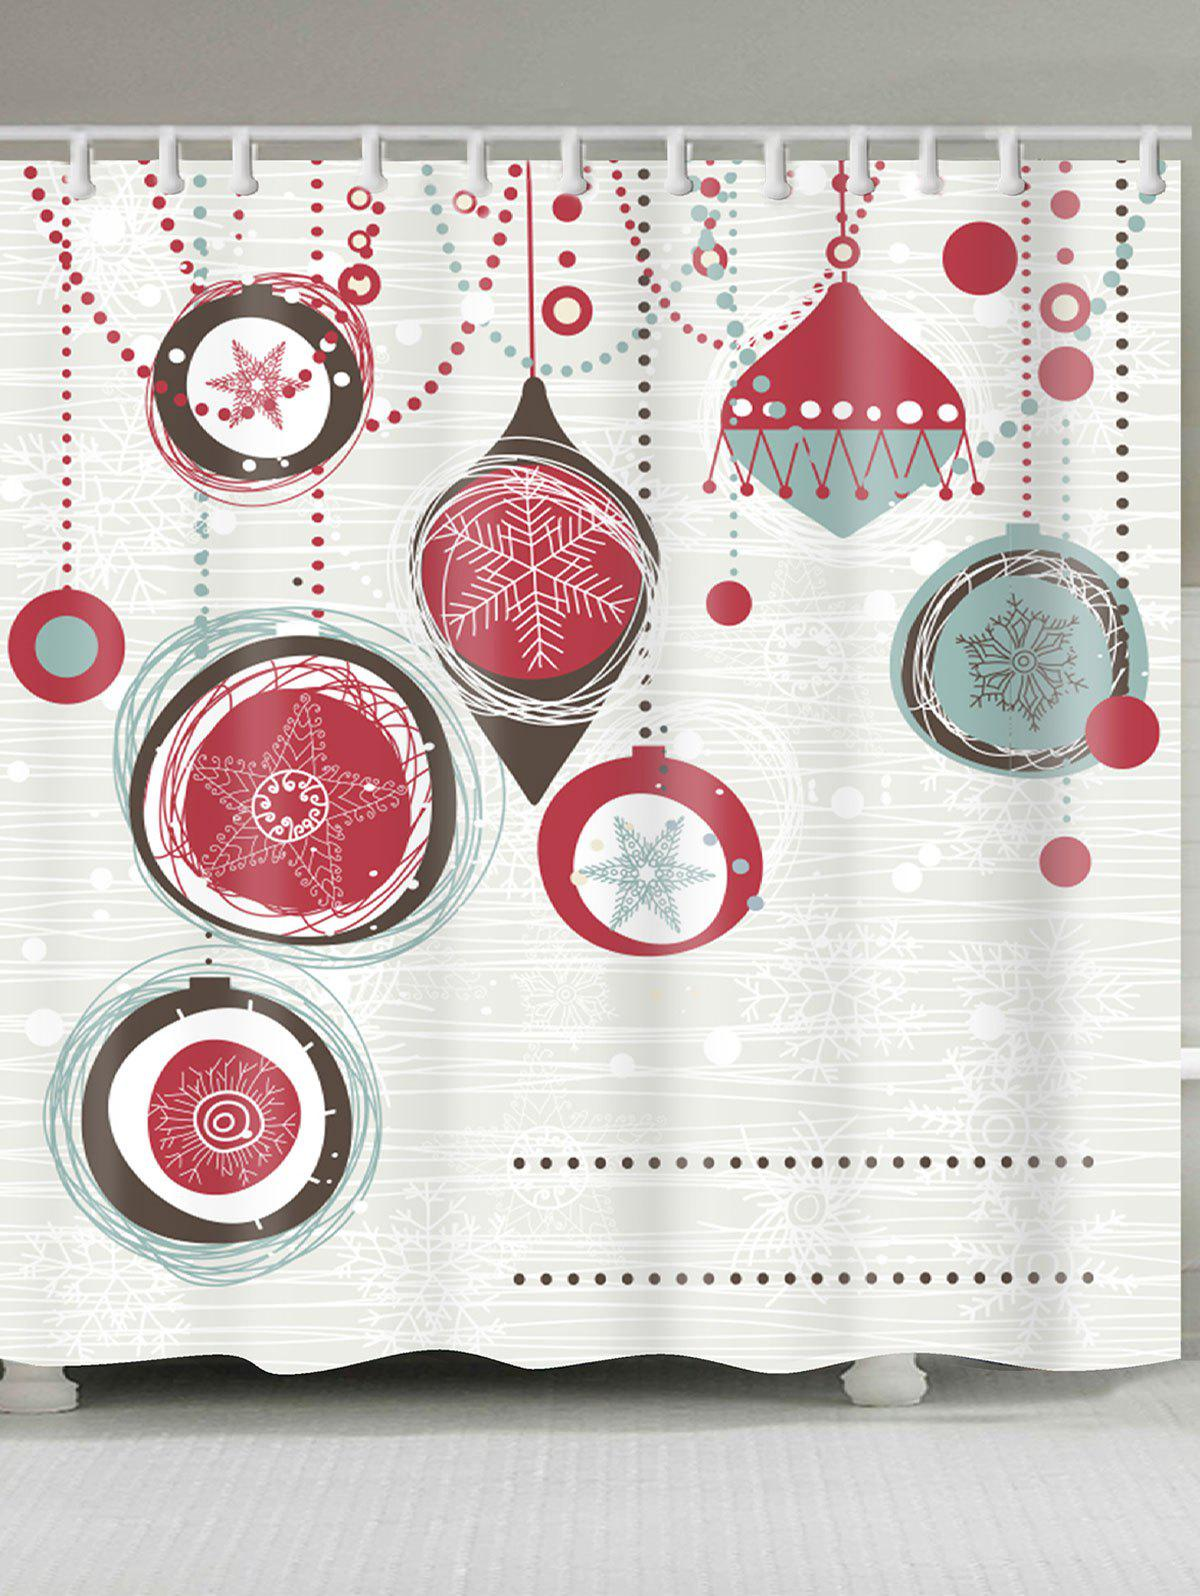 Christmas Balls Patterned Bathroom Shower CurtainHOME<br><br>Size: W71 INCH * L79 INCH; Color: RED AND WHITE; Products Type: Shower Curtains; Materials: Polyester; Pattern: Ball,Print; Style: Festival; Number of Hook Holes: W59 inch * L71 inch:10, W71 inch * L71 inch:12, W71 inch * L79 inch:12; Package Contents: 1 x Shower Curtain 1 x Hooks (Set);